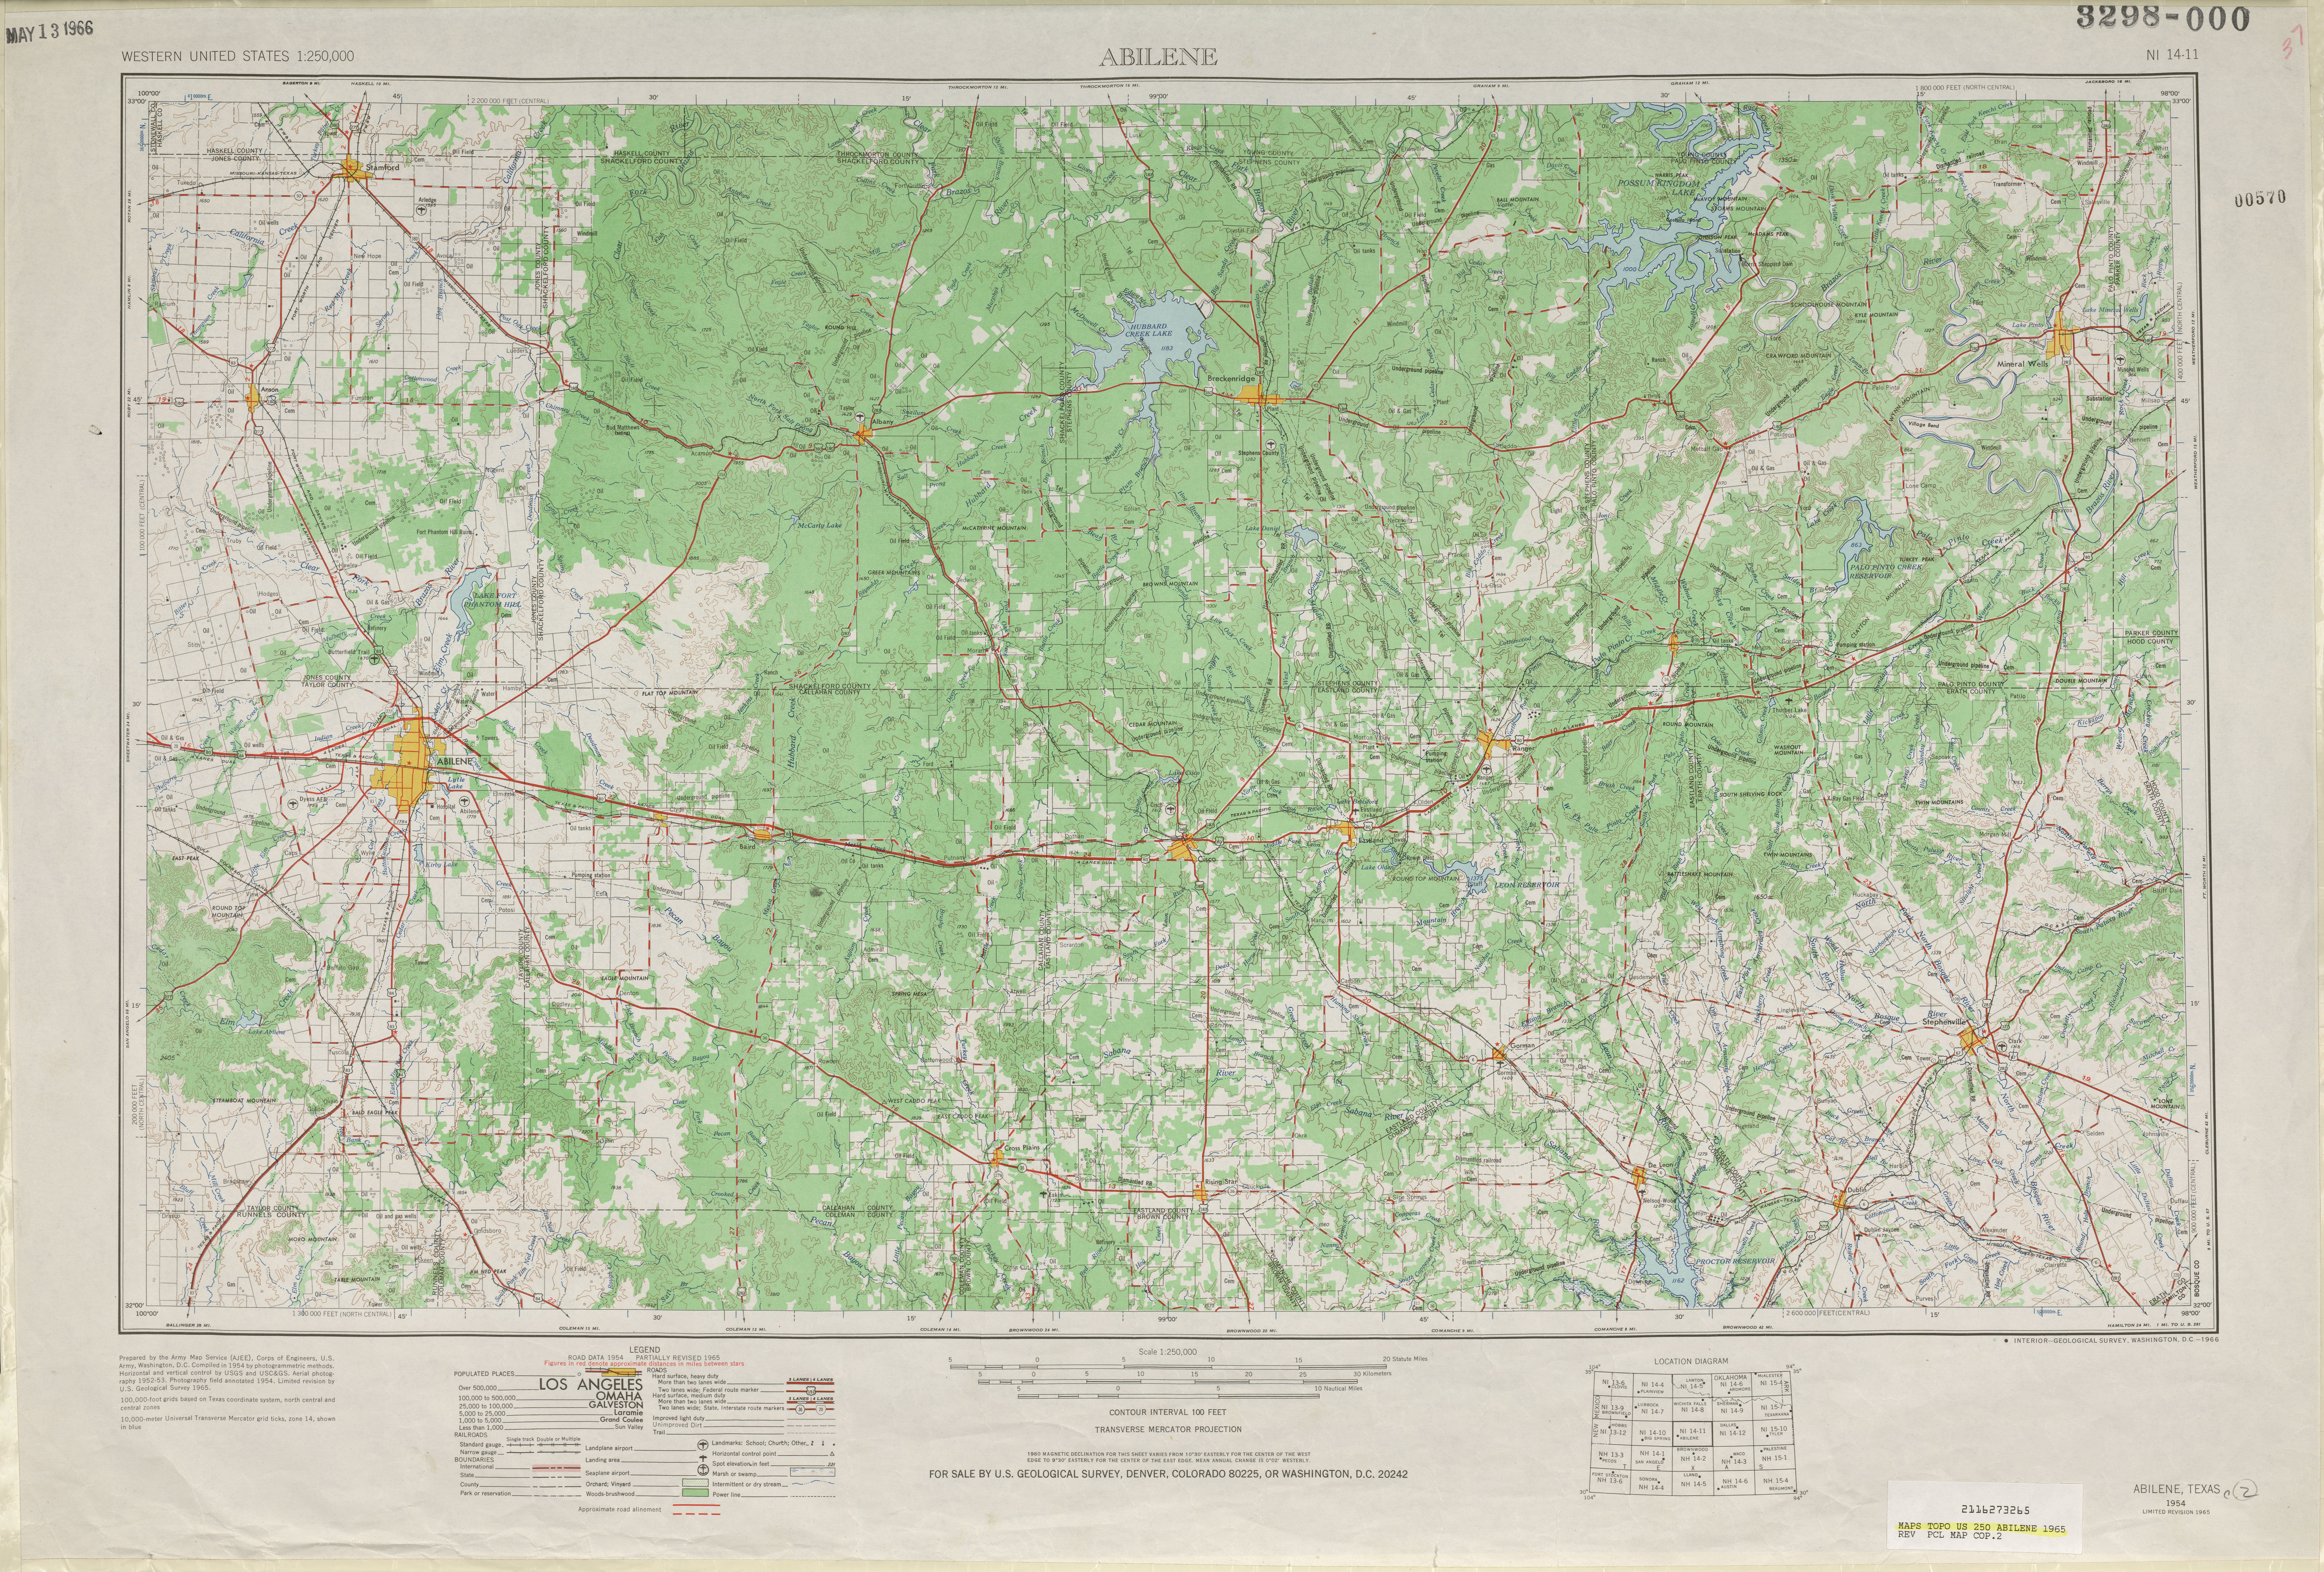 Texas Topographic Maps PerryCastañeda Map Collection UT - Topographic map of western us